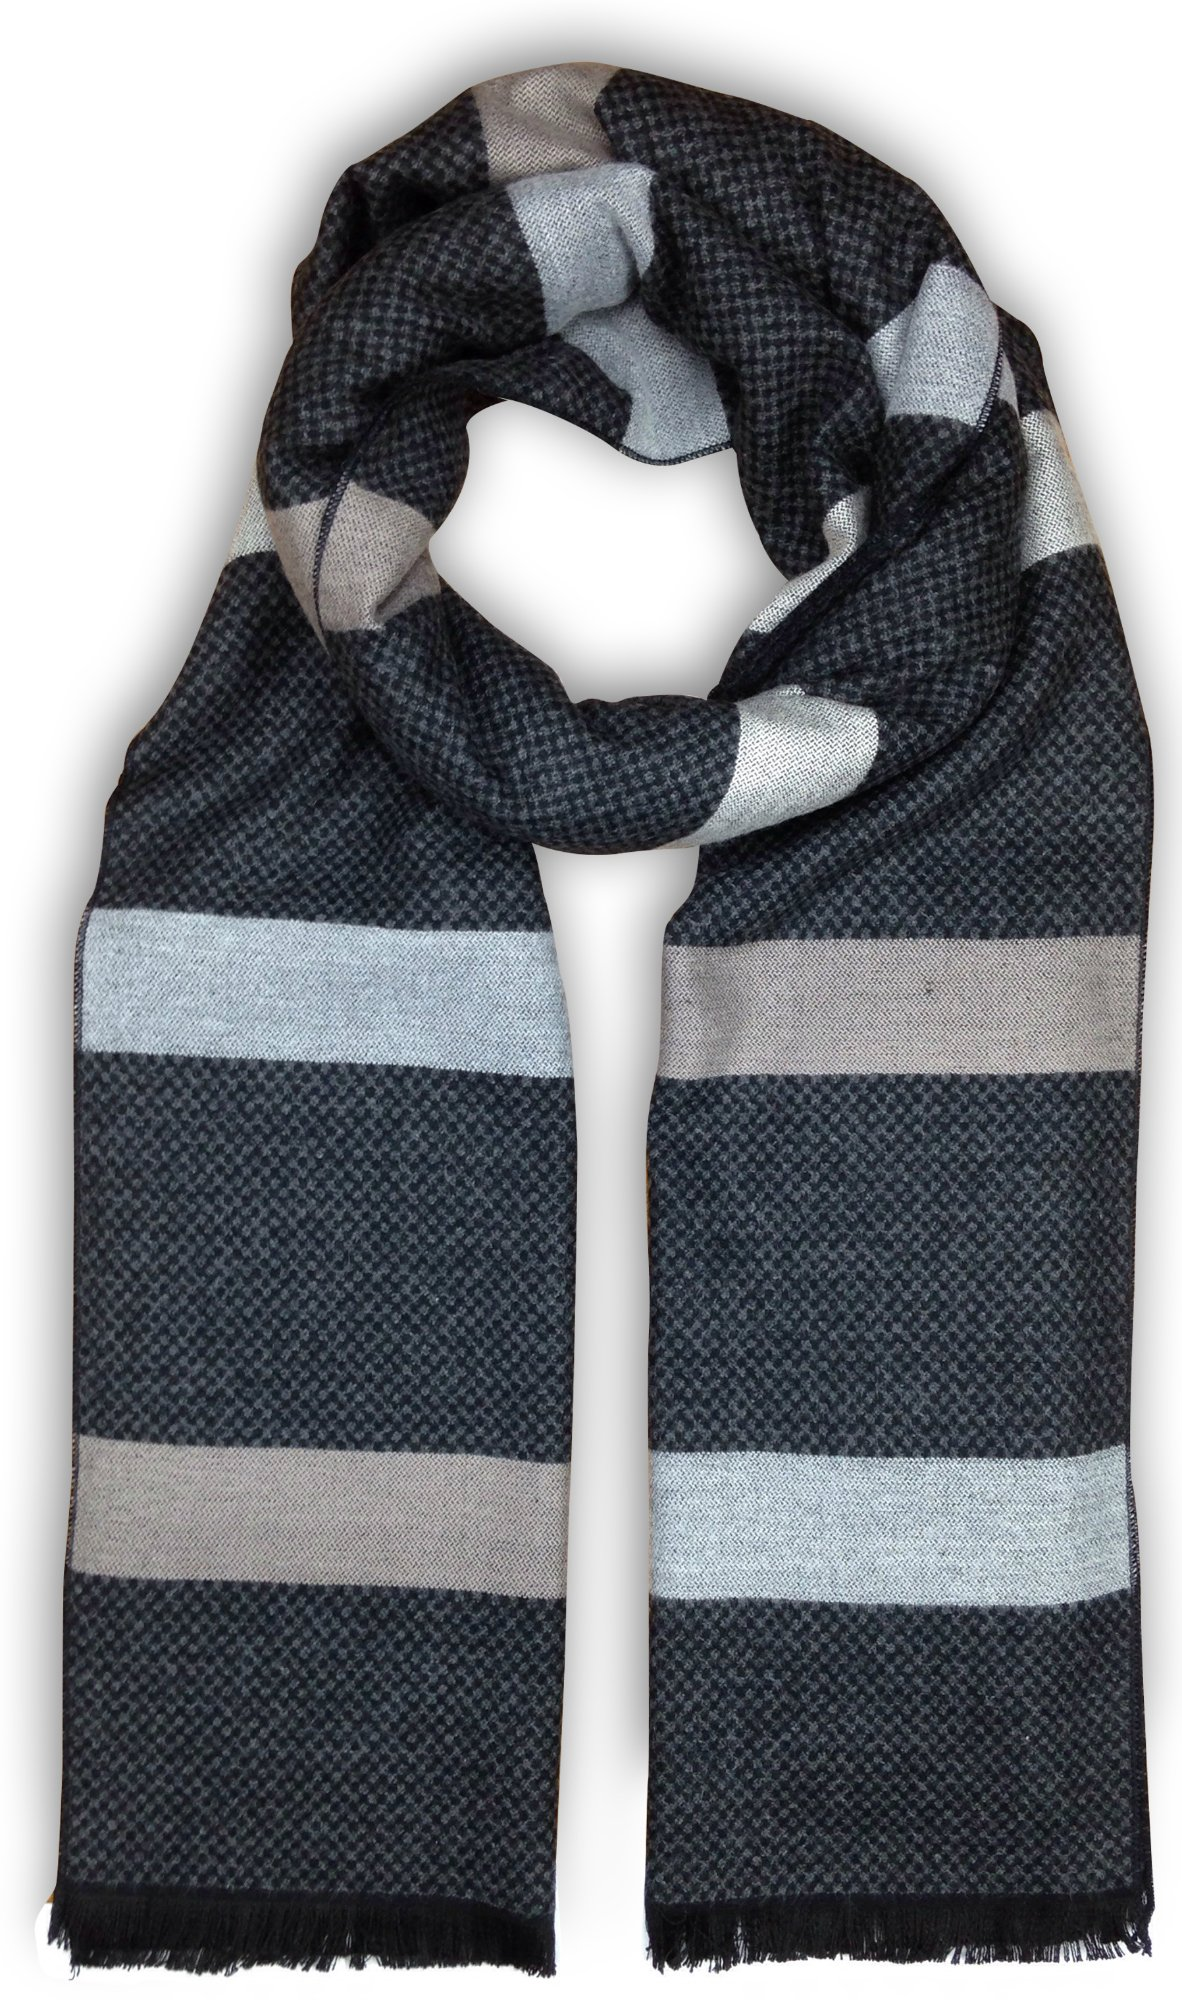 Bleu Nero Luxurious Winter Scarf for Men and Women – Large Selection of Unique Design Scarves – Super Soft Premium Cashmere Feel Black Grey Checked Taupe-Grey Stripes